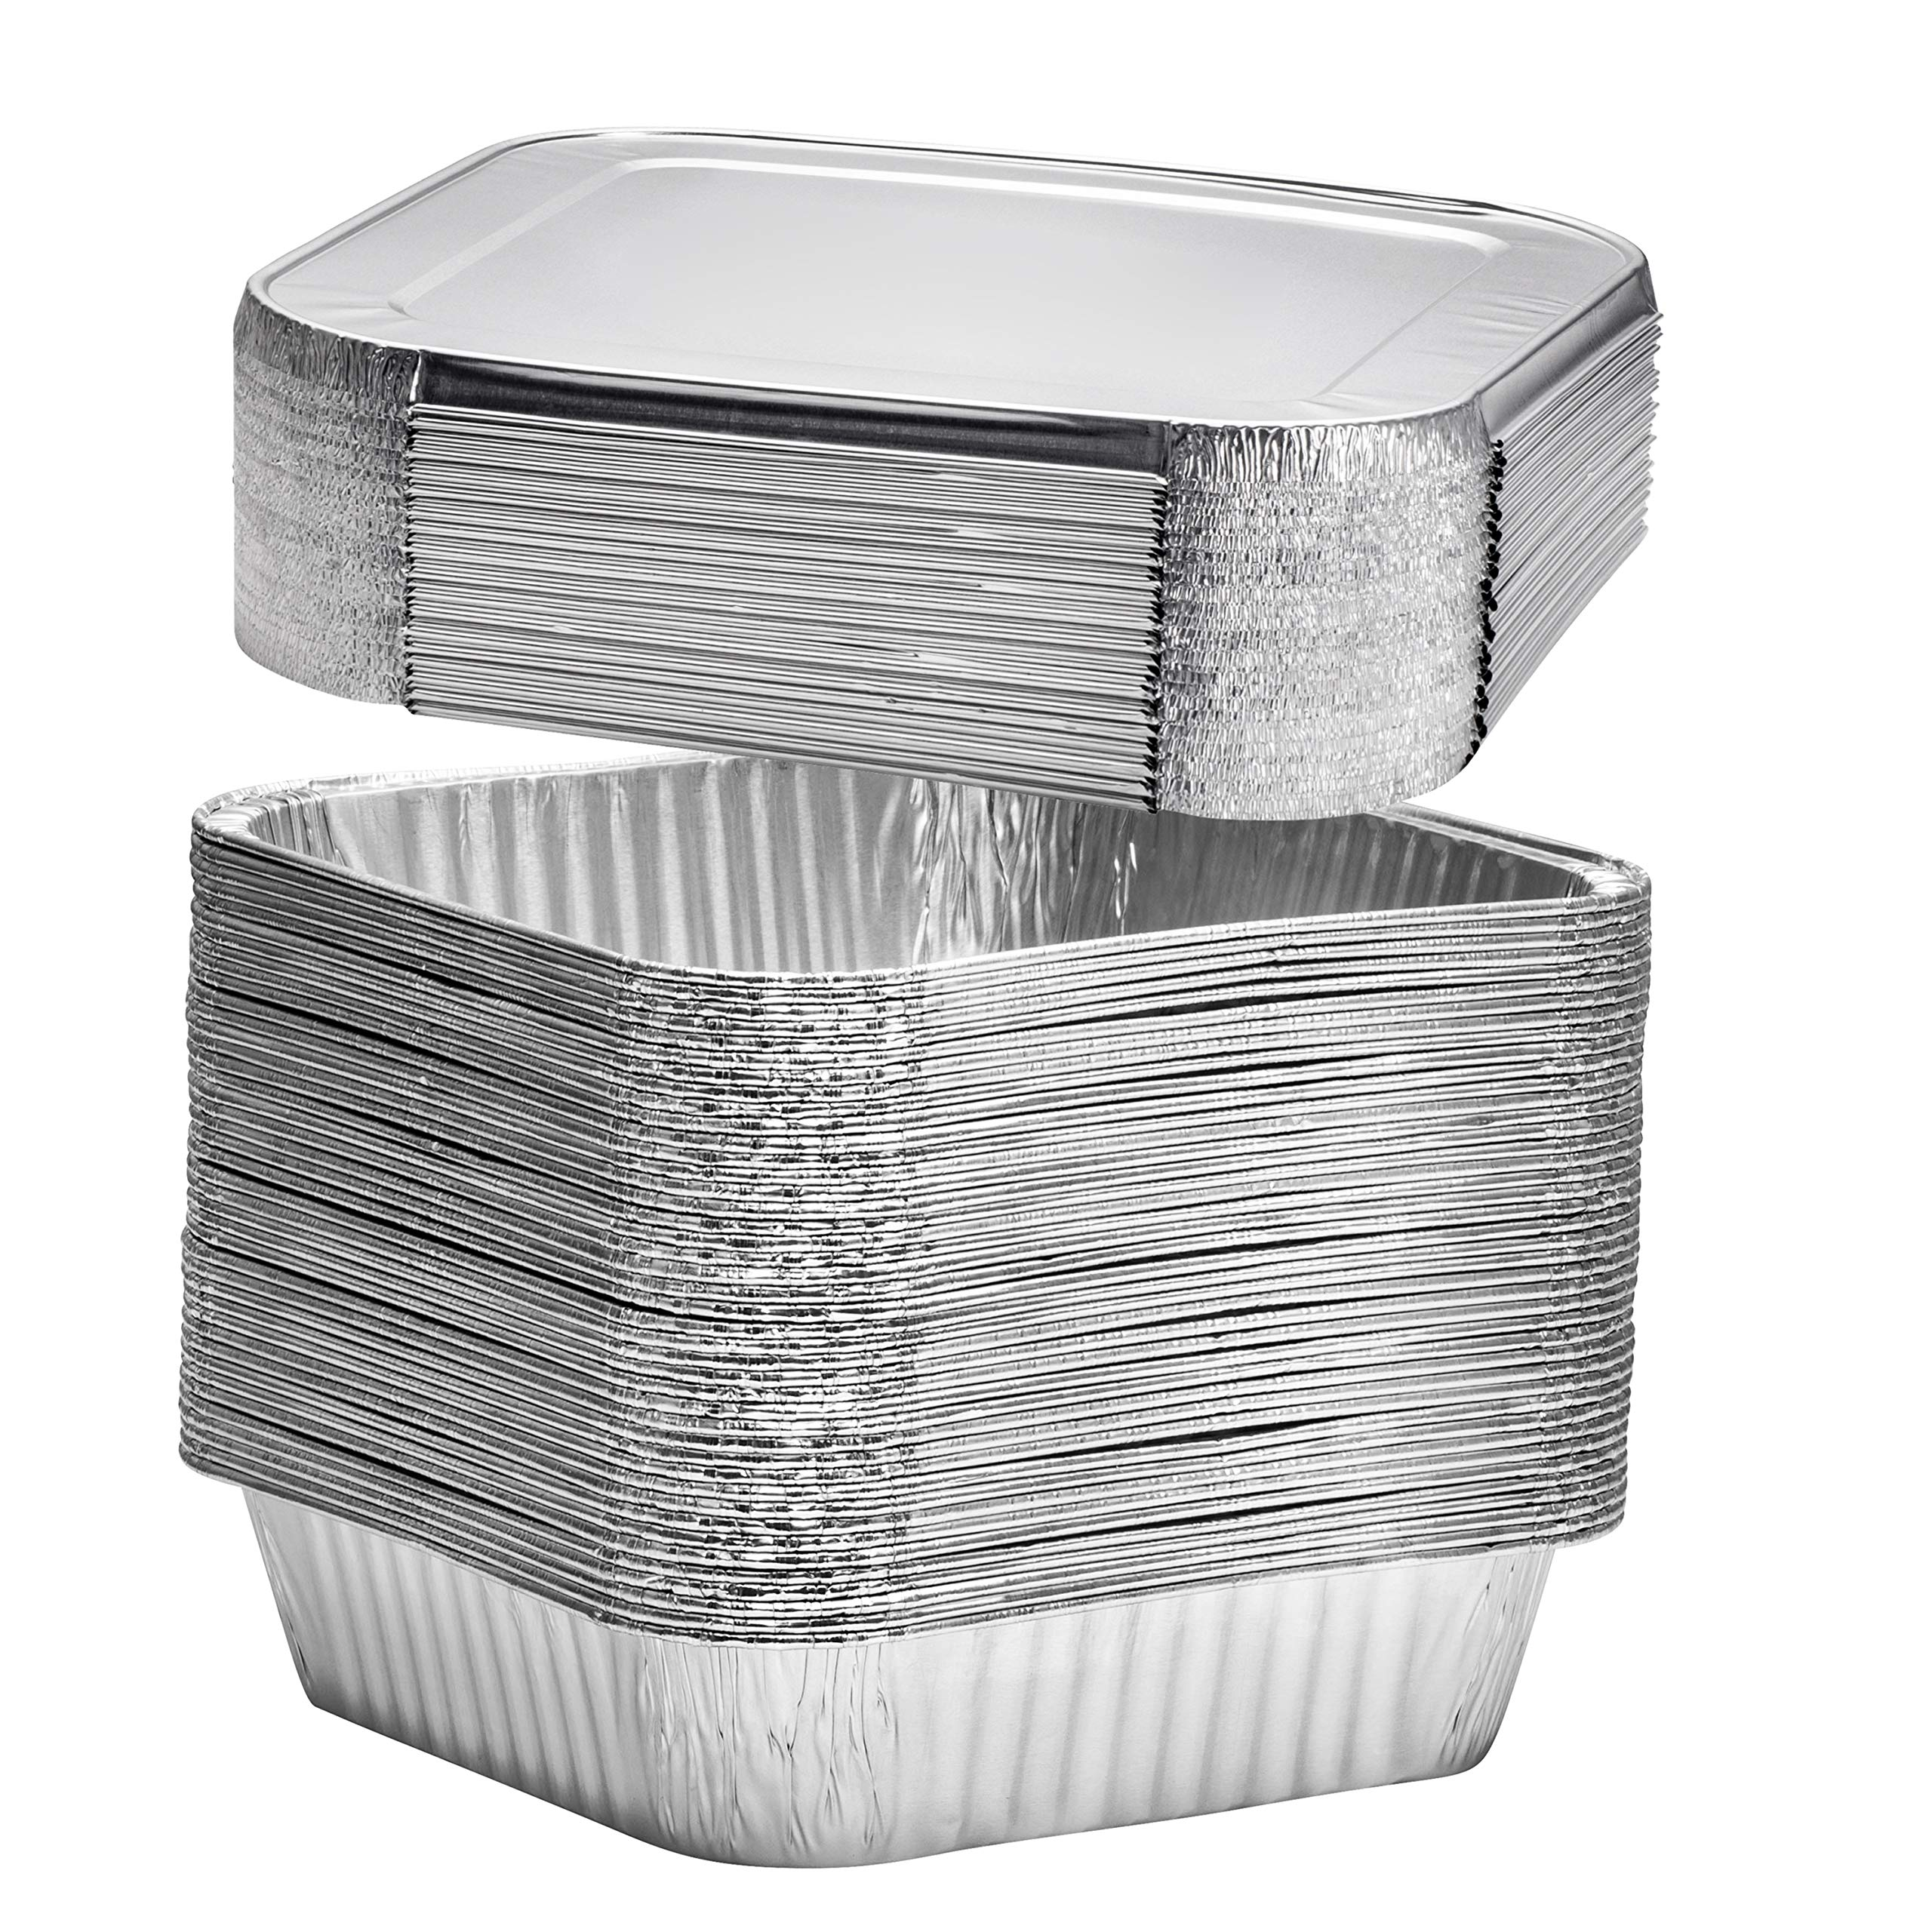 8'' Square Disposable Aluminum Cake Pans - Foil Pans perfect for baking cakes, roasting, homemade breads   8 x 8 x 2 in with Flat Lids (20 count)